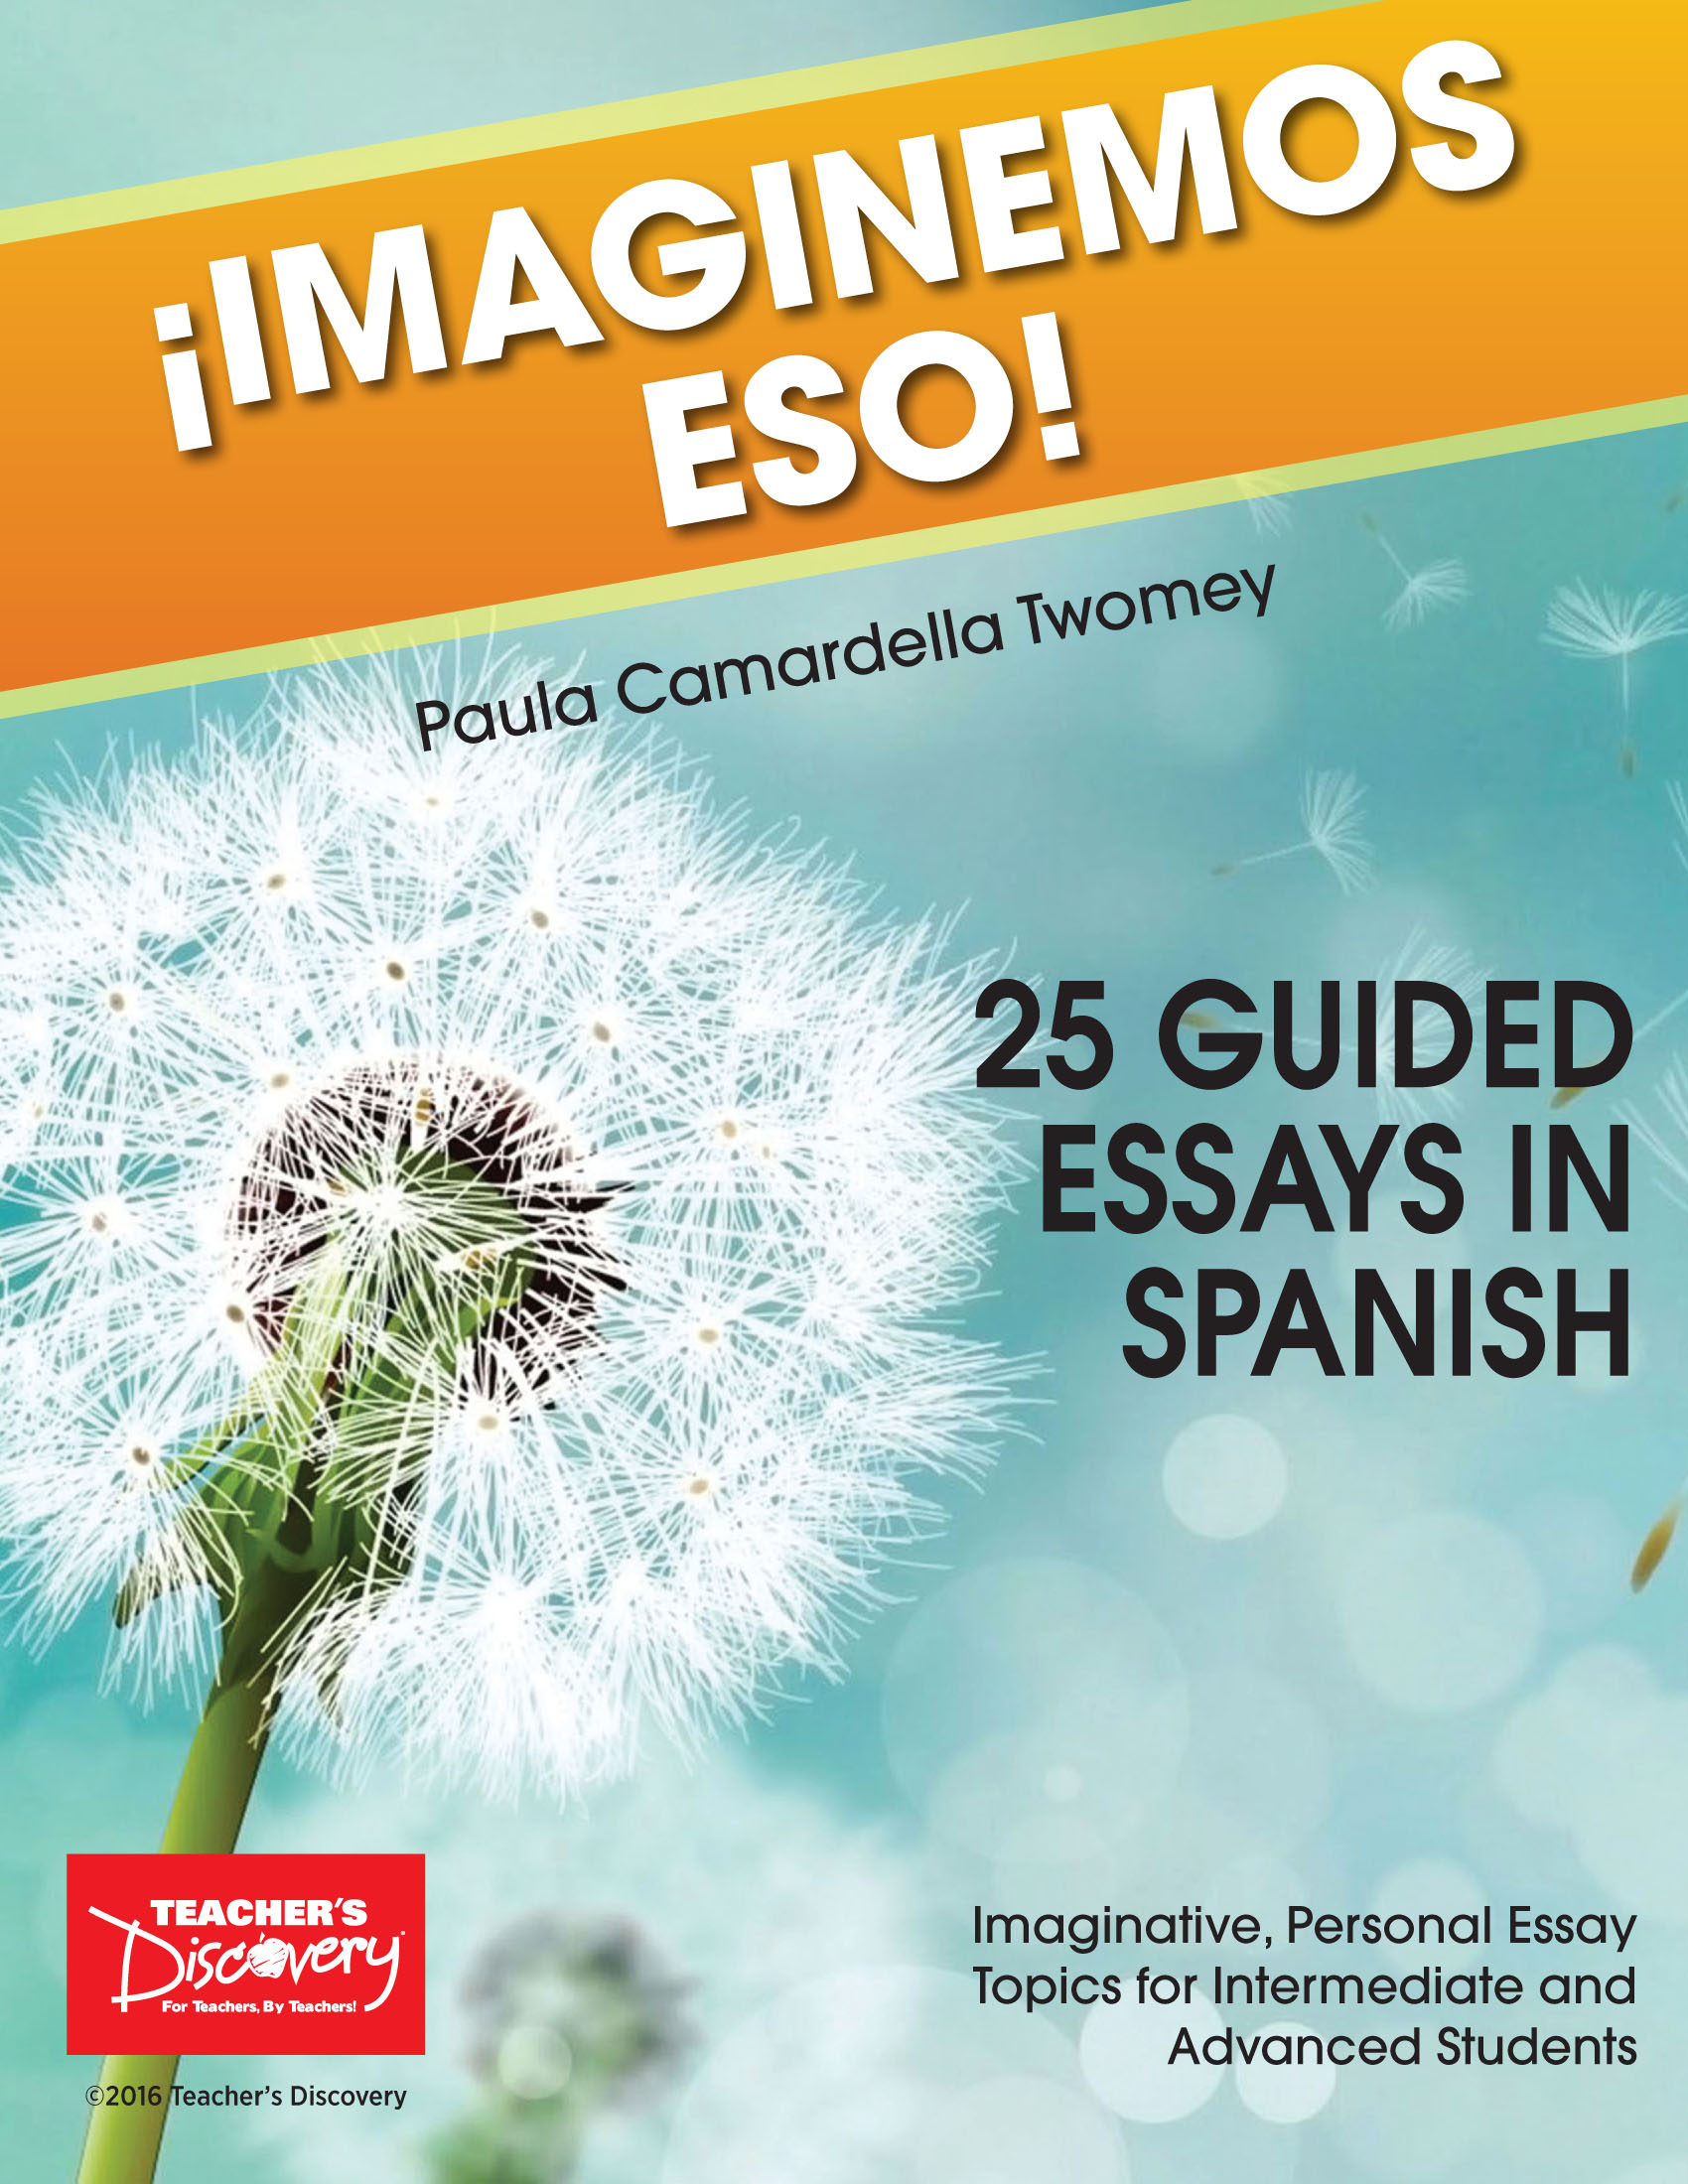 ¡Imaginemos eso! 25 Guided Essays in Spanish Book